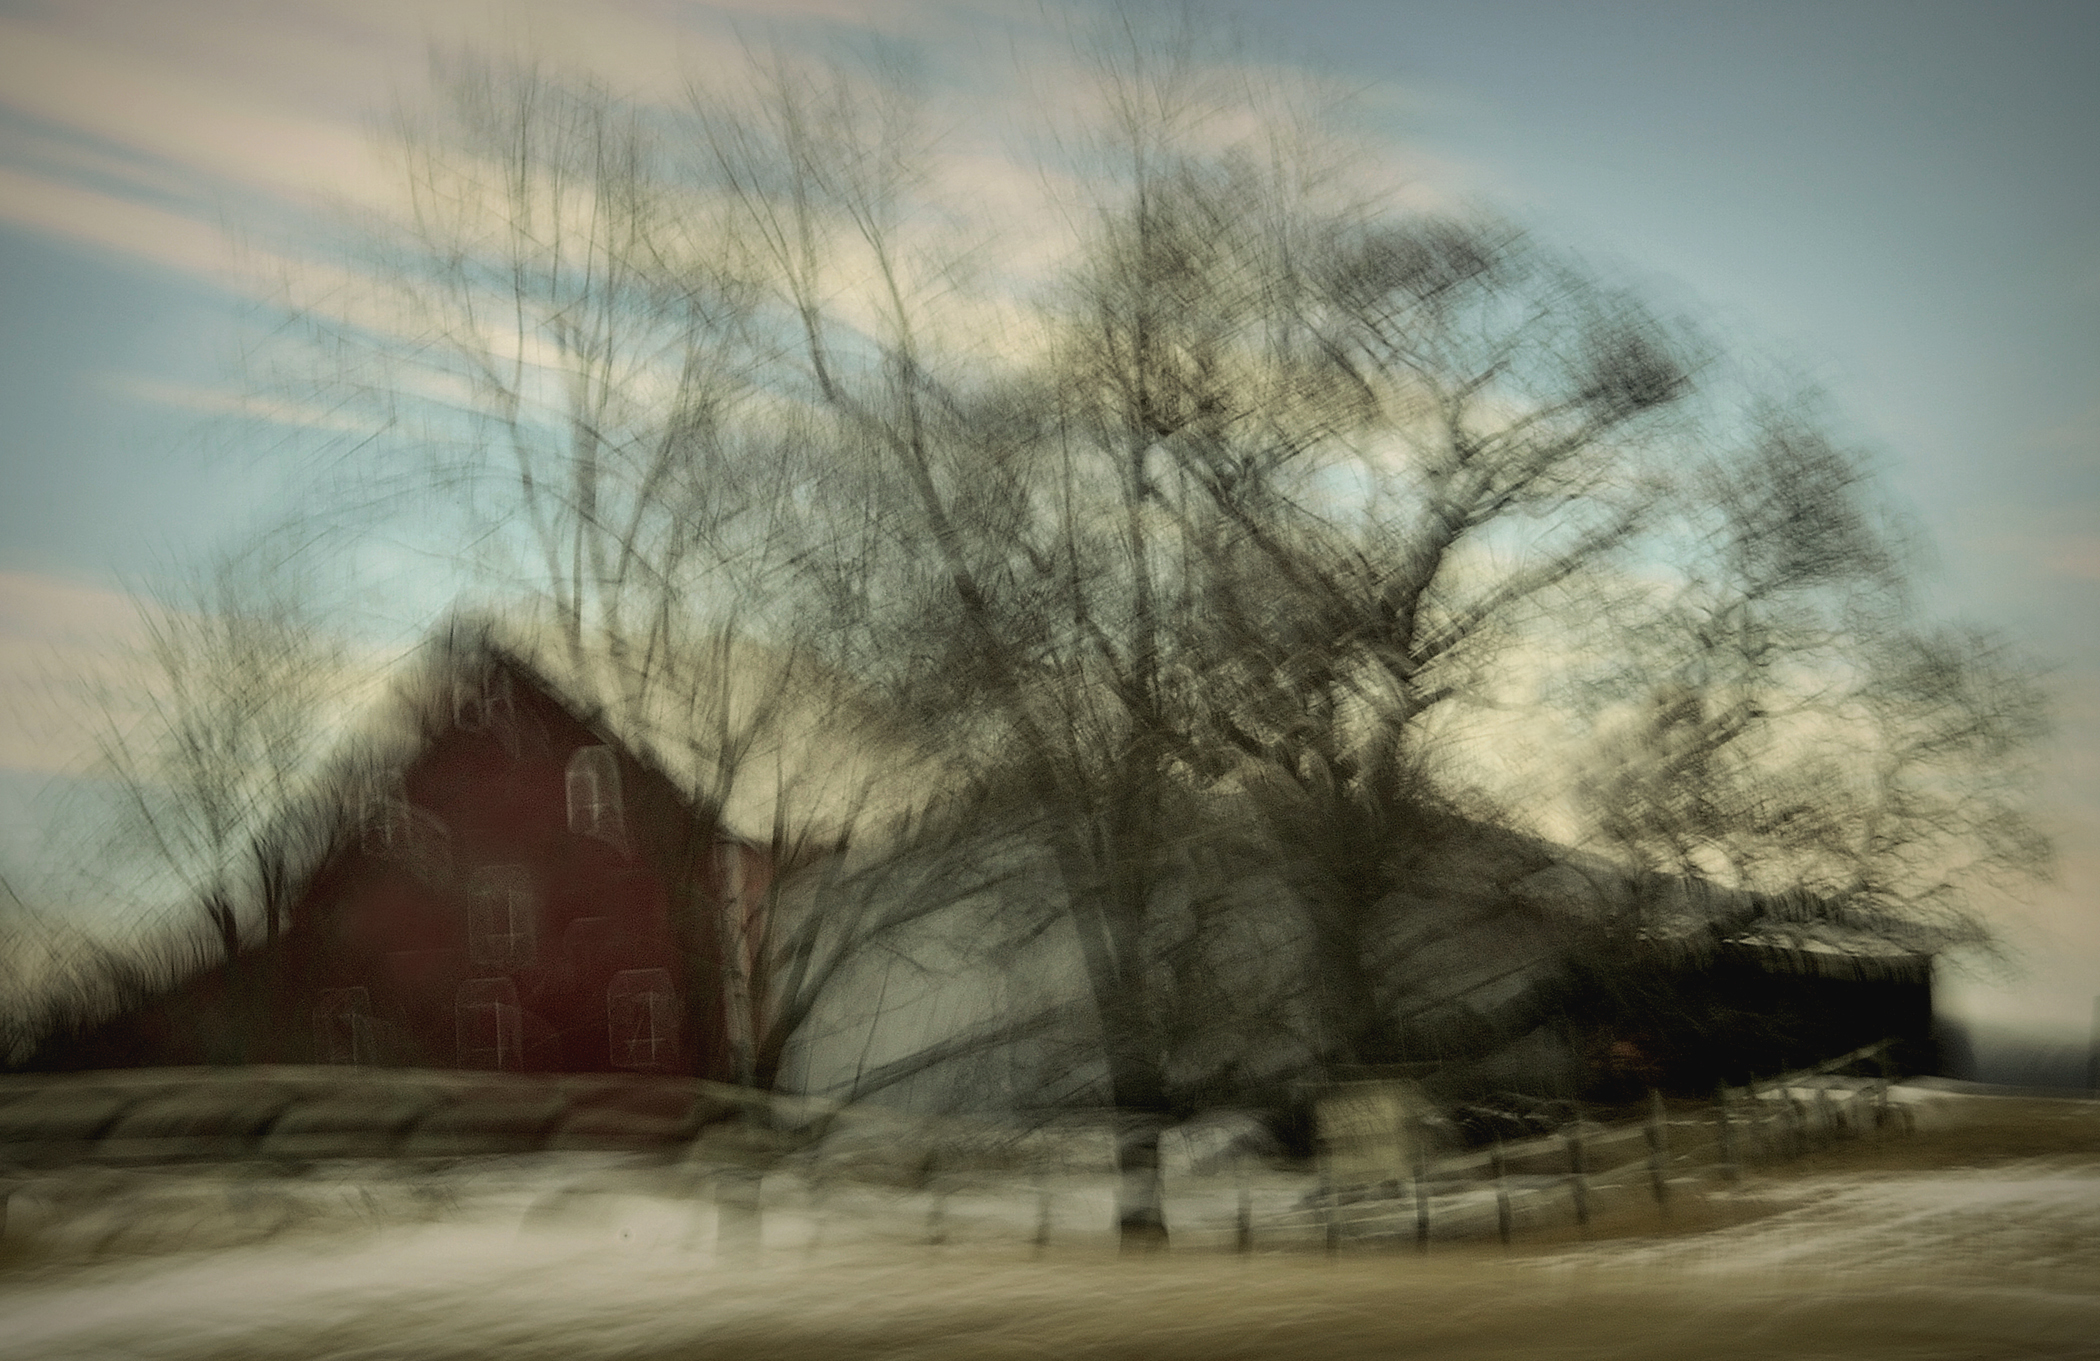 the ghosting of winter trees c2